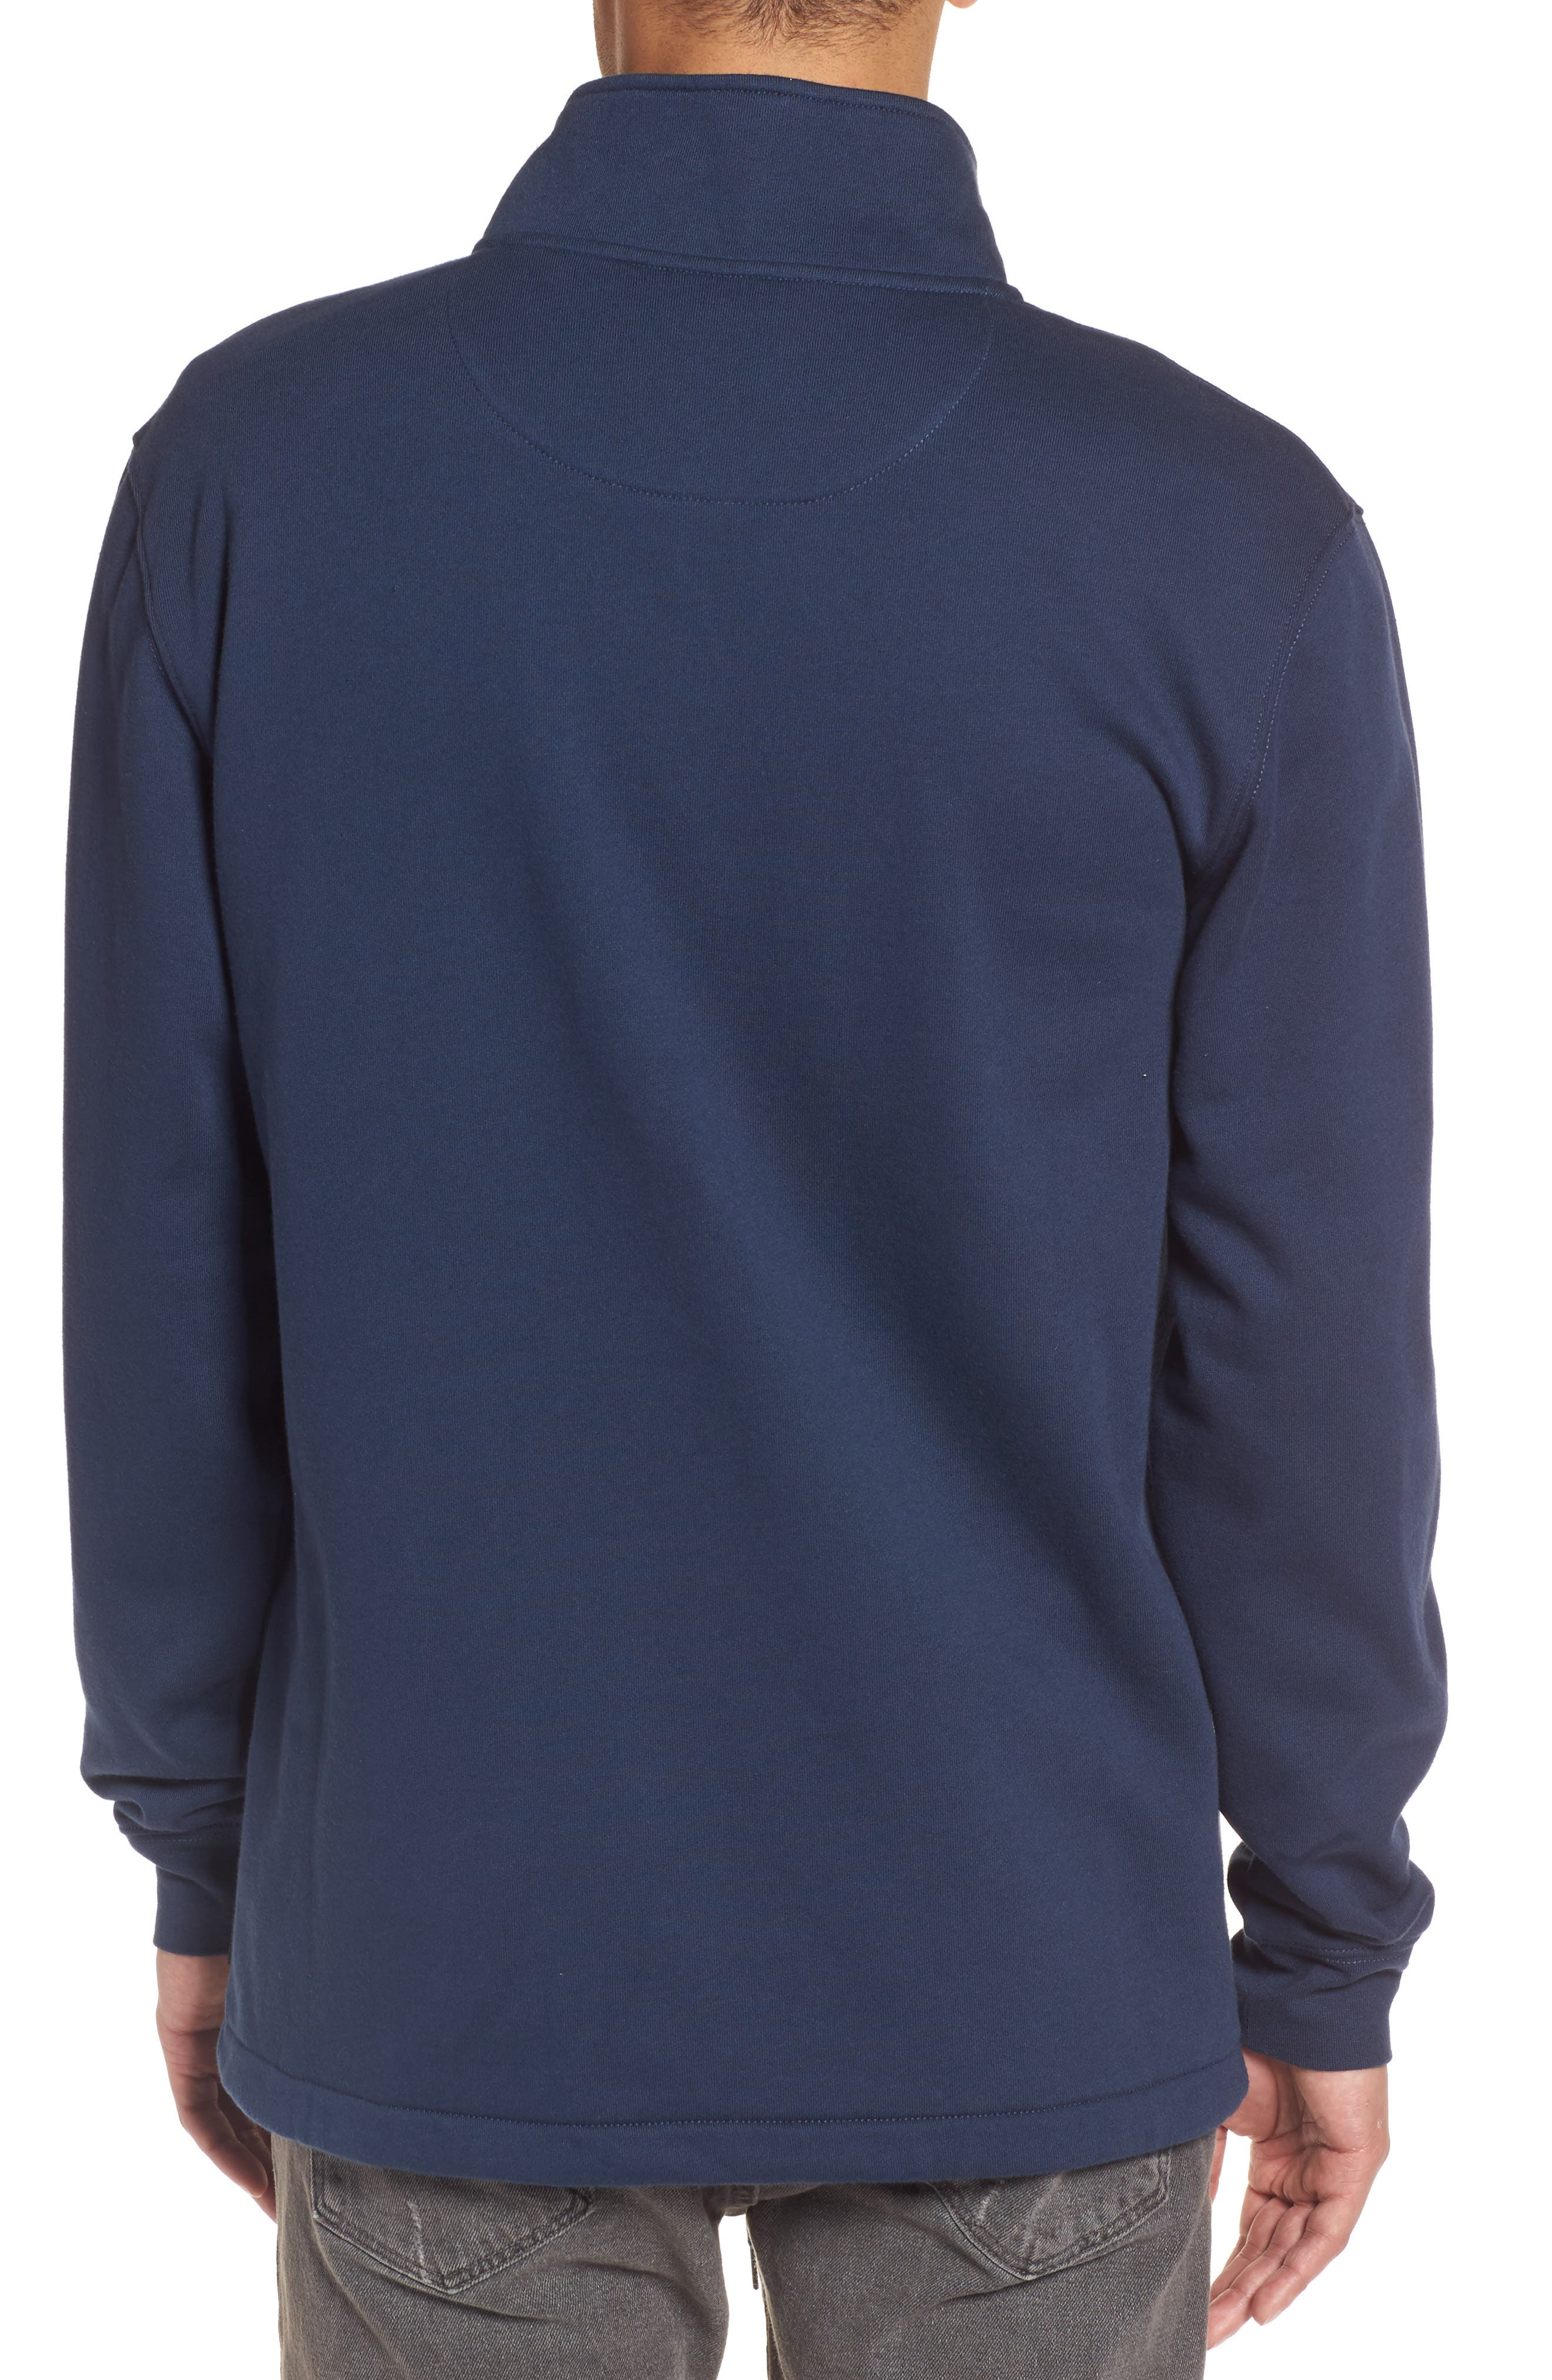 Fifty Fifty Half Zip Pullover,                             Alternate thumbnail 2, color,                             401